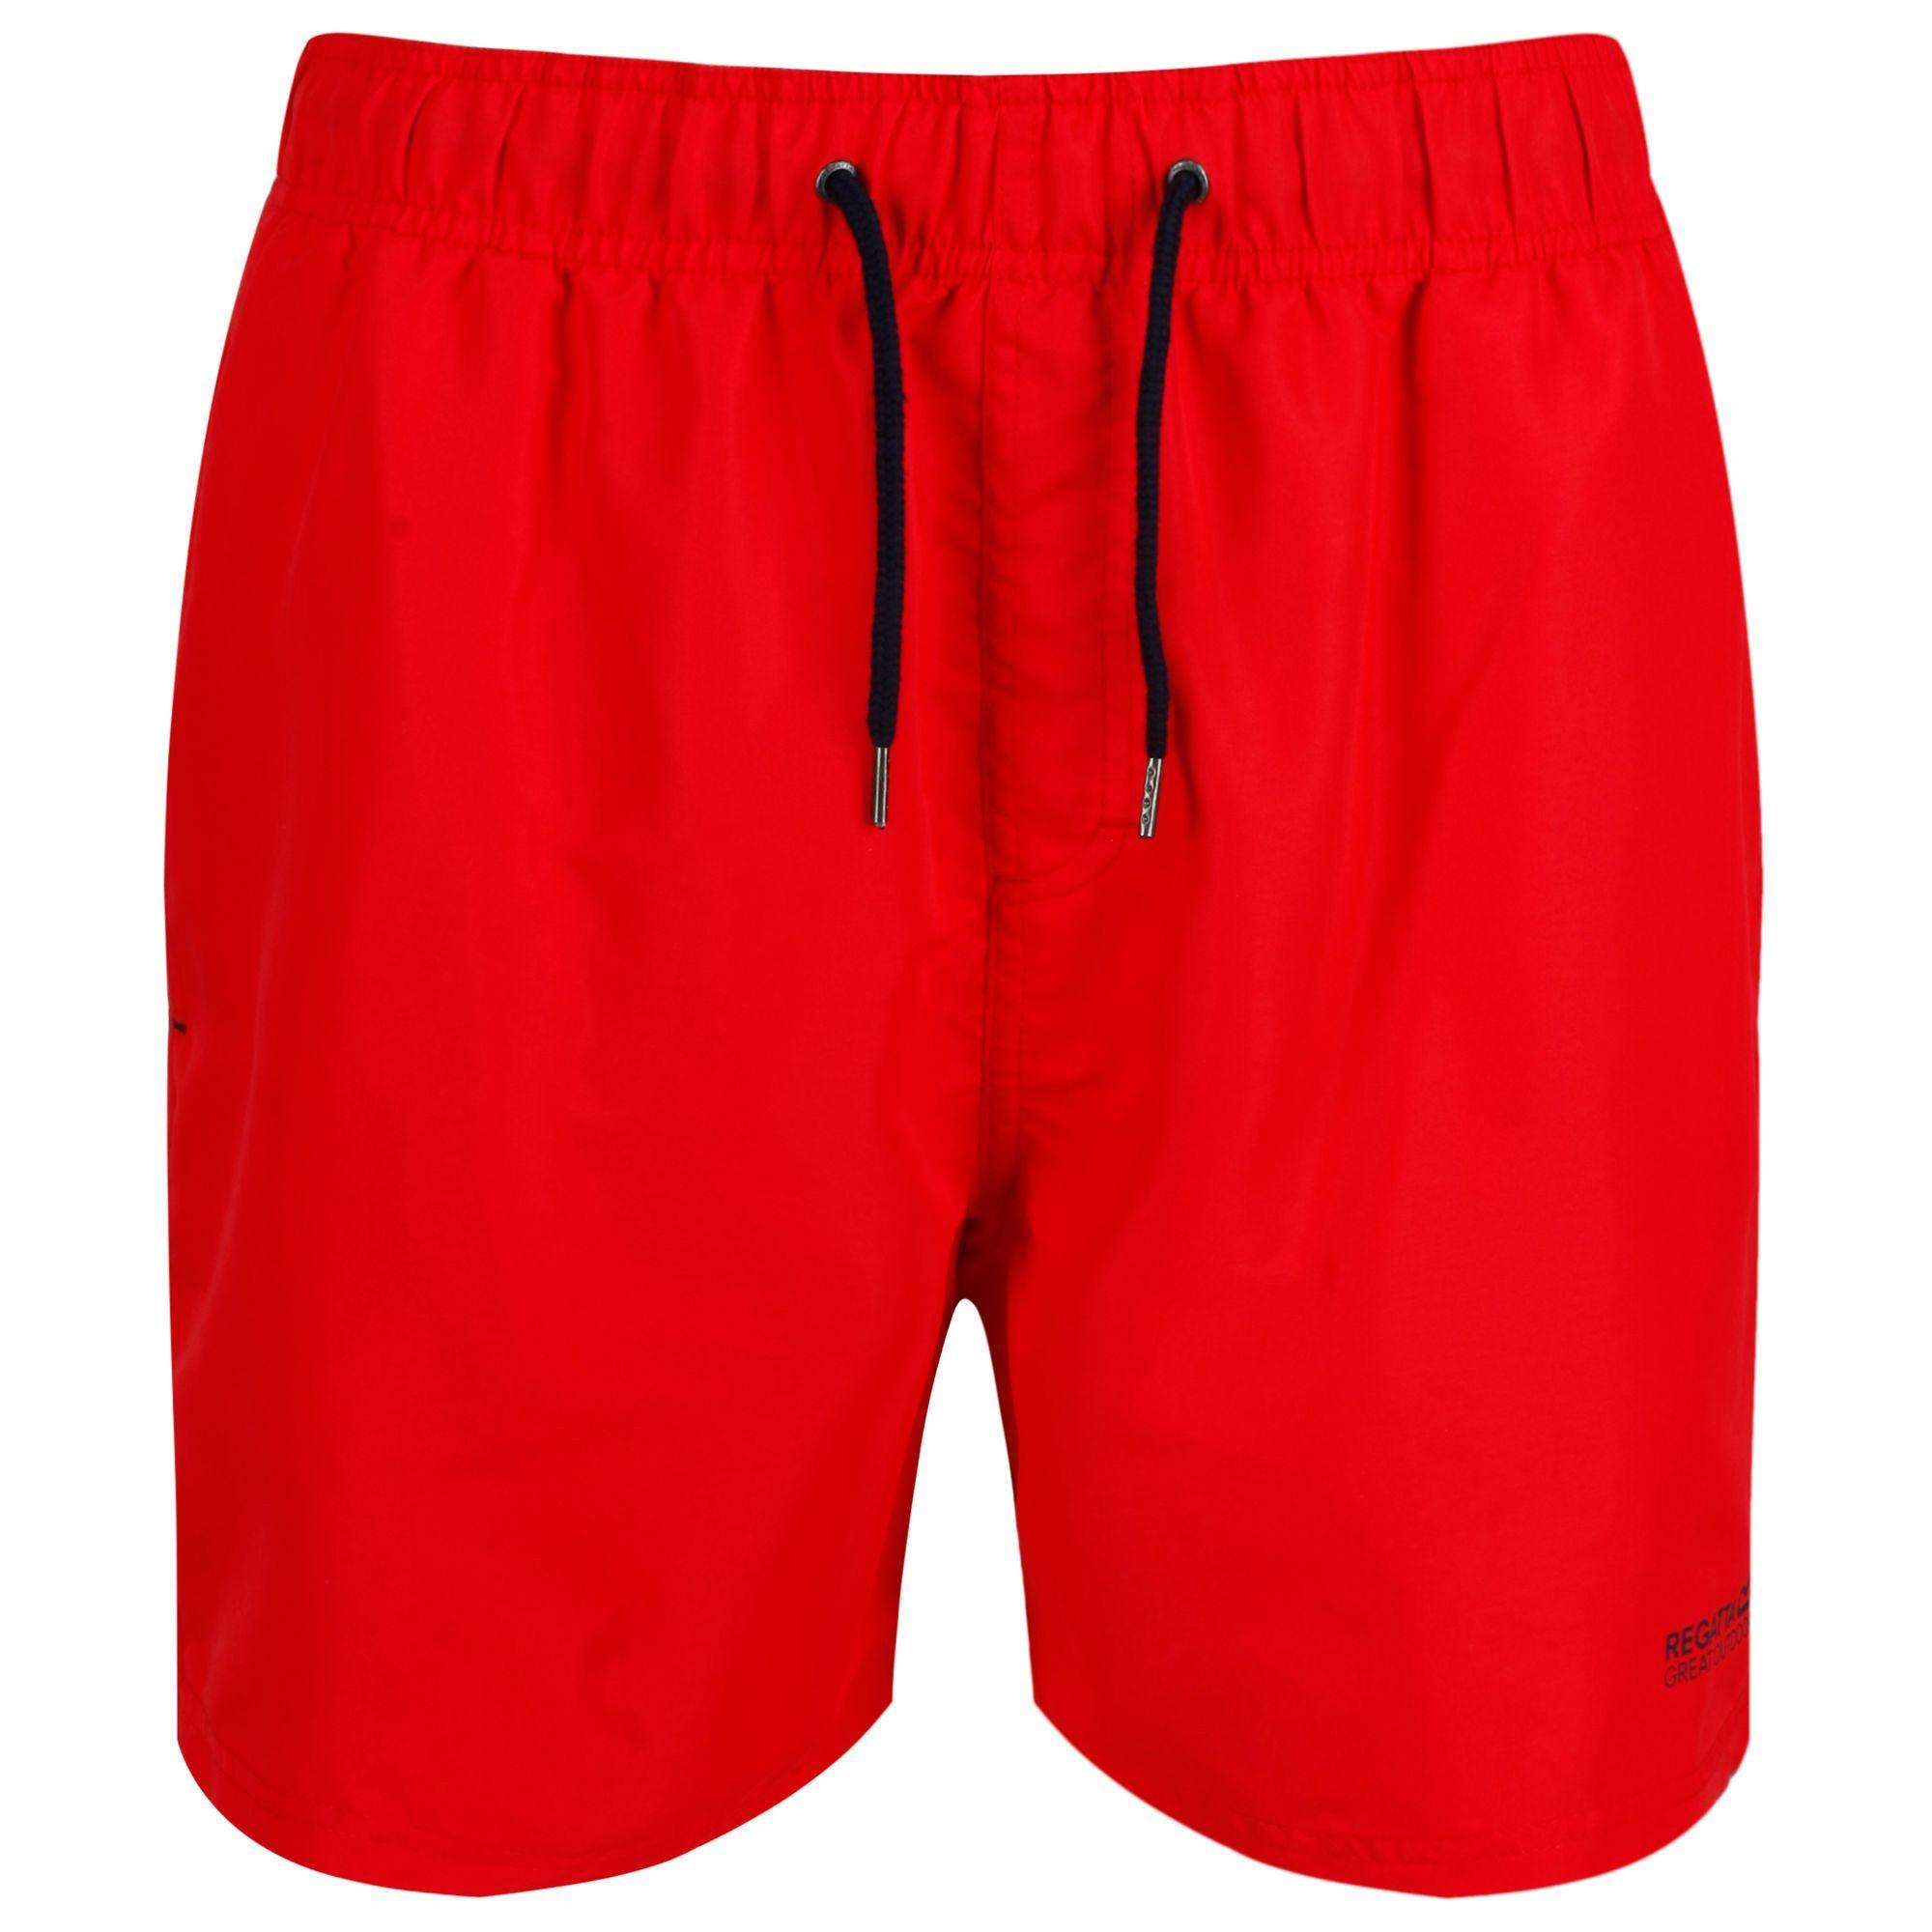 f0249dc7e9 Regatta Red 'mawson' Swim Shorts in Red for Men - Lyst